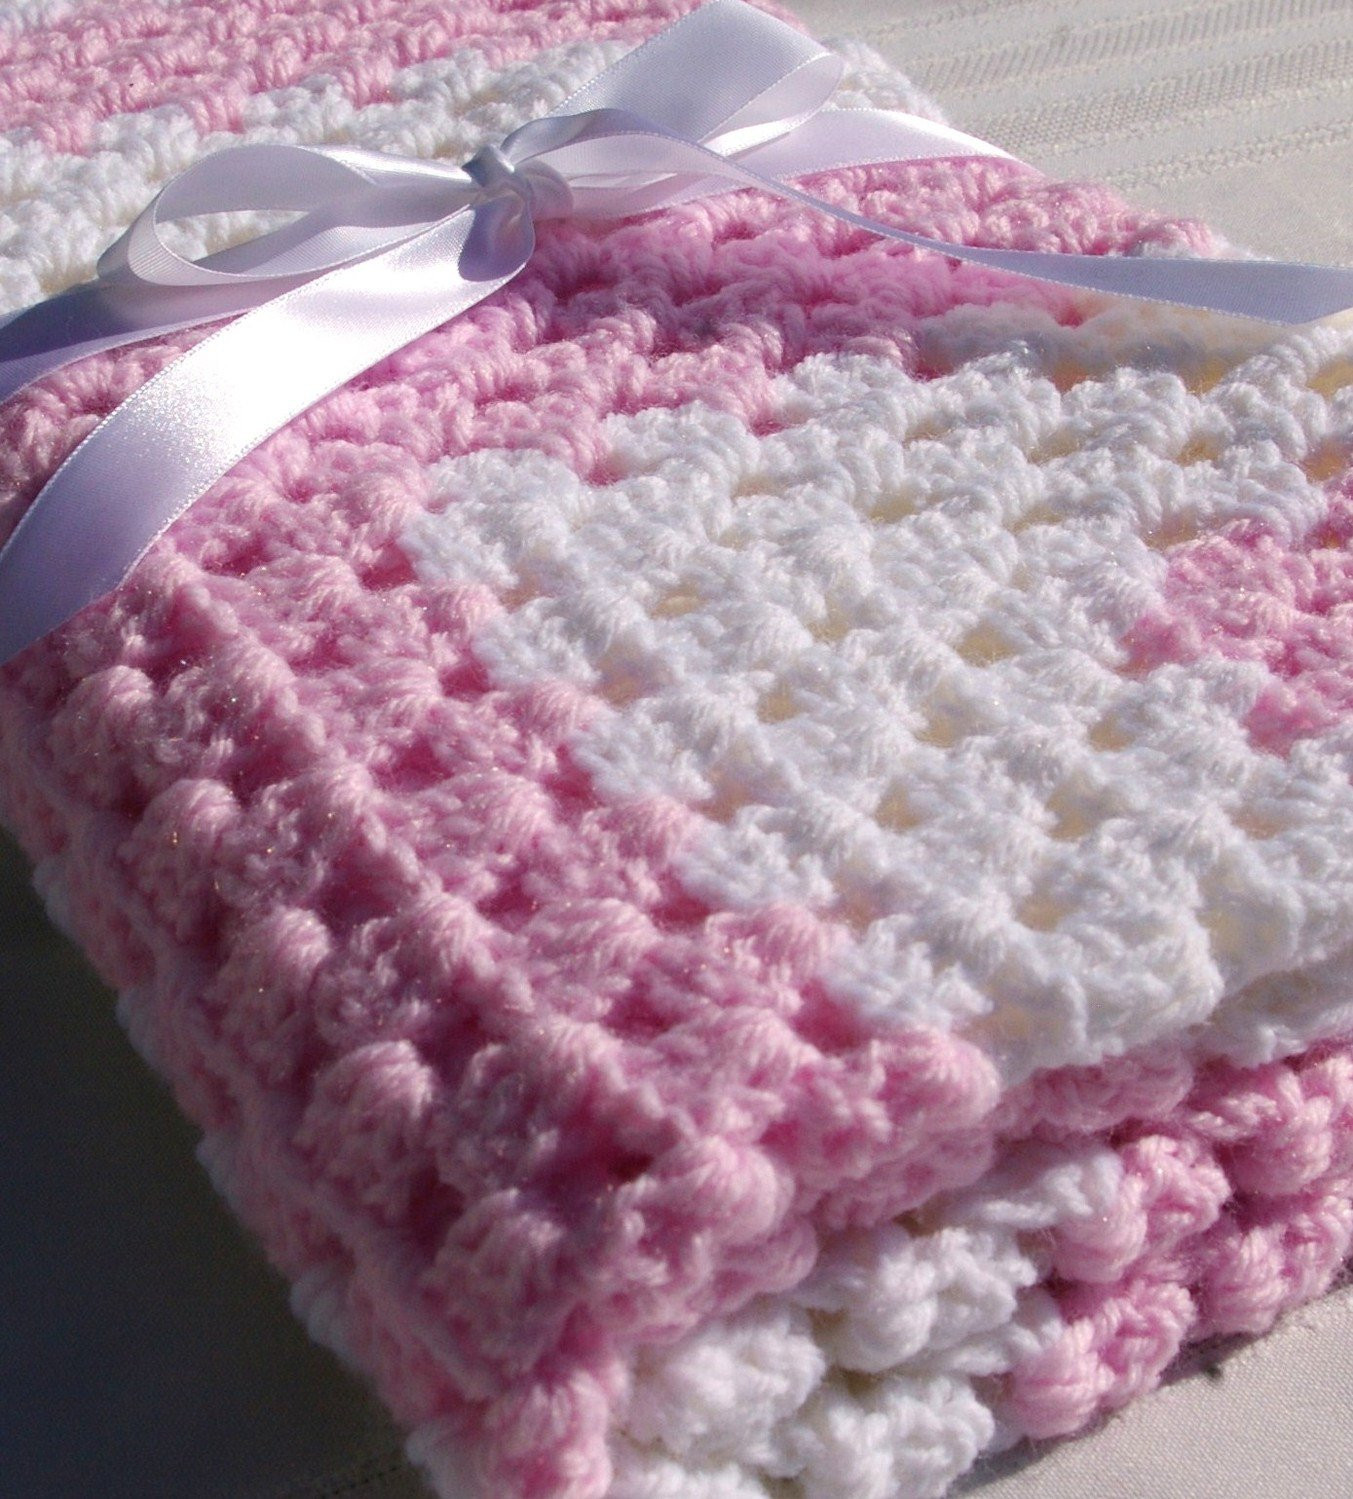 Baby Girl Crochet Blanket Patterns New Baby Girl Blanket Pink Crochet Afghan Of Unique 41 Photos Baby Girl Crochet Blanket Patterns